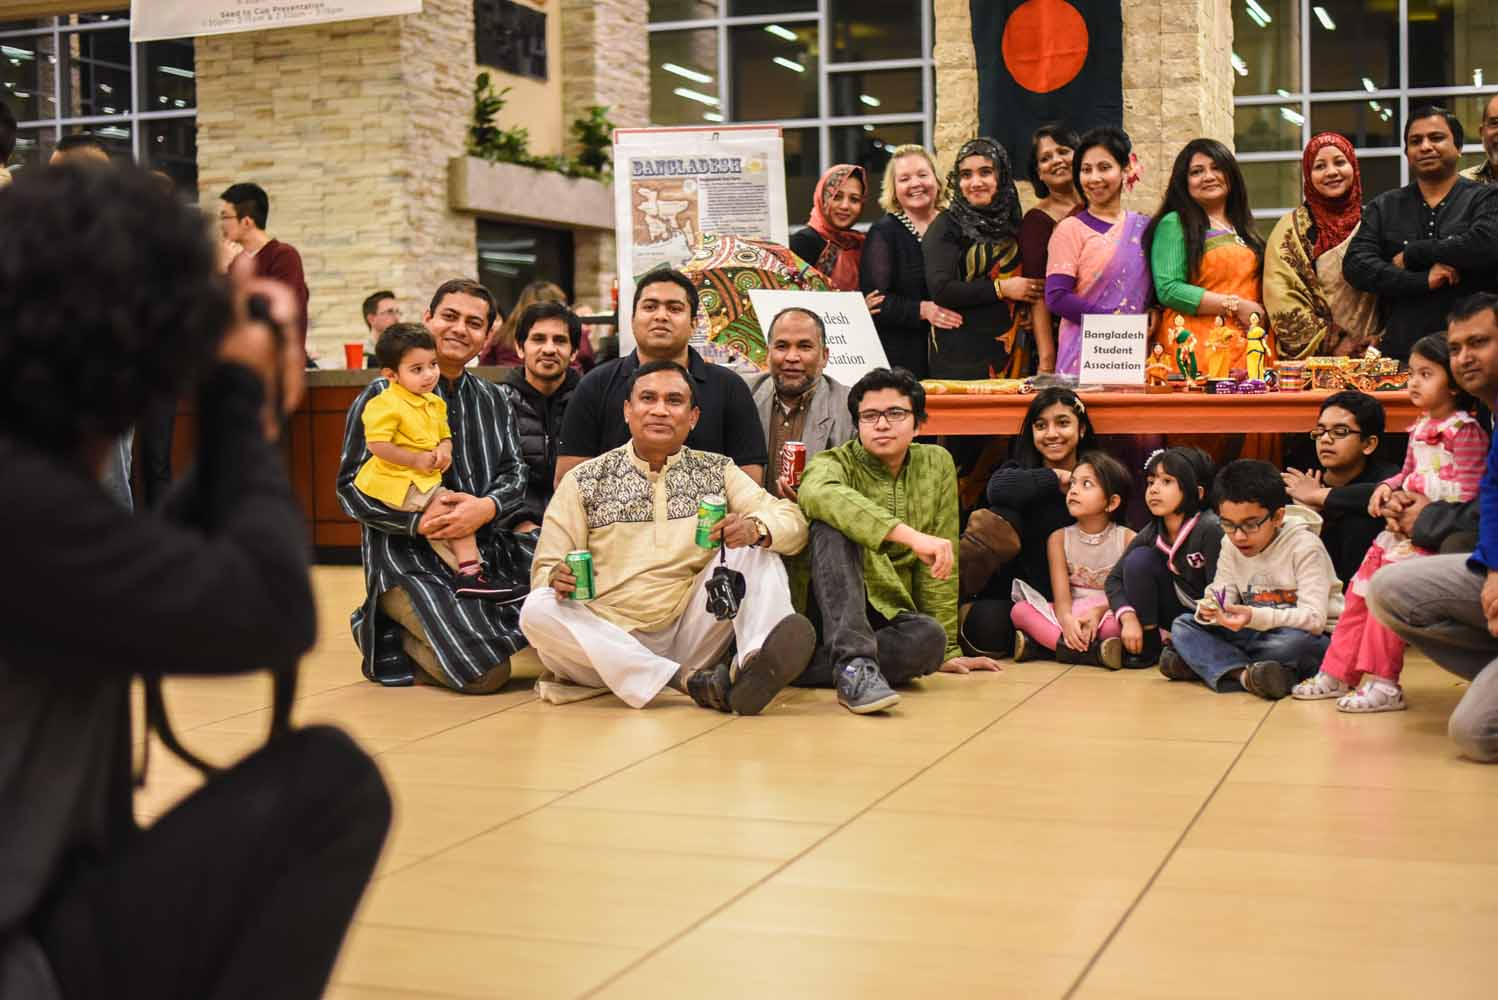 The Bangladesh Student Association joined together for a group picture at the International Welcome Party at the MU Student Center on Saturday, Feb. 6, 2016. (Photo by Morgan Lieberman)